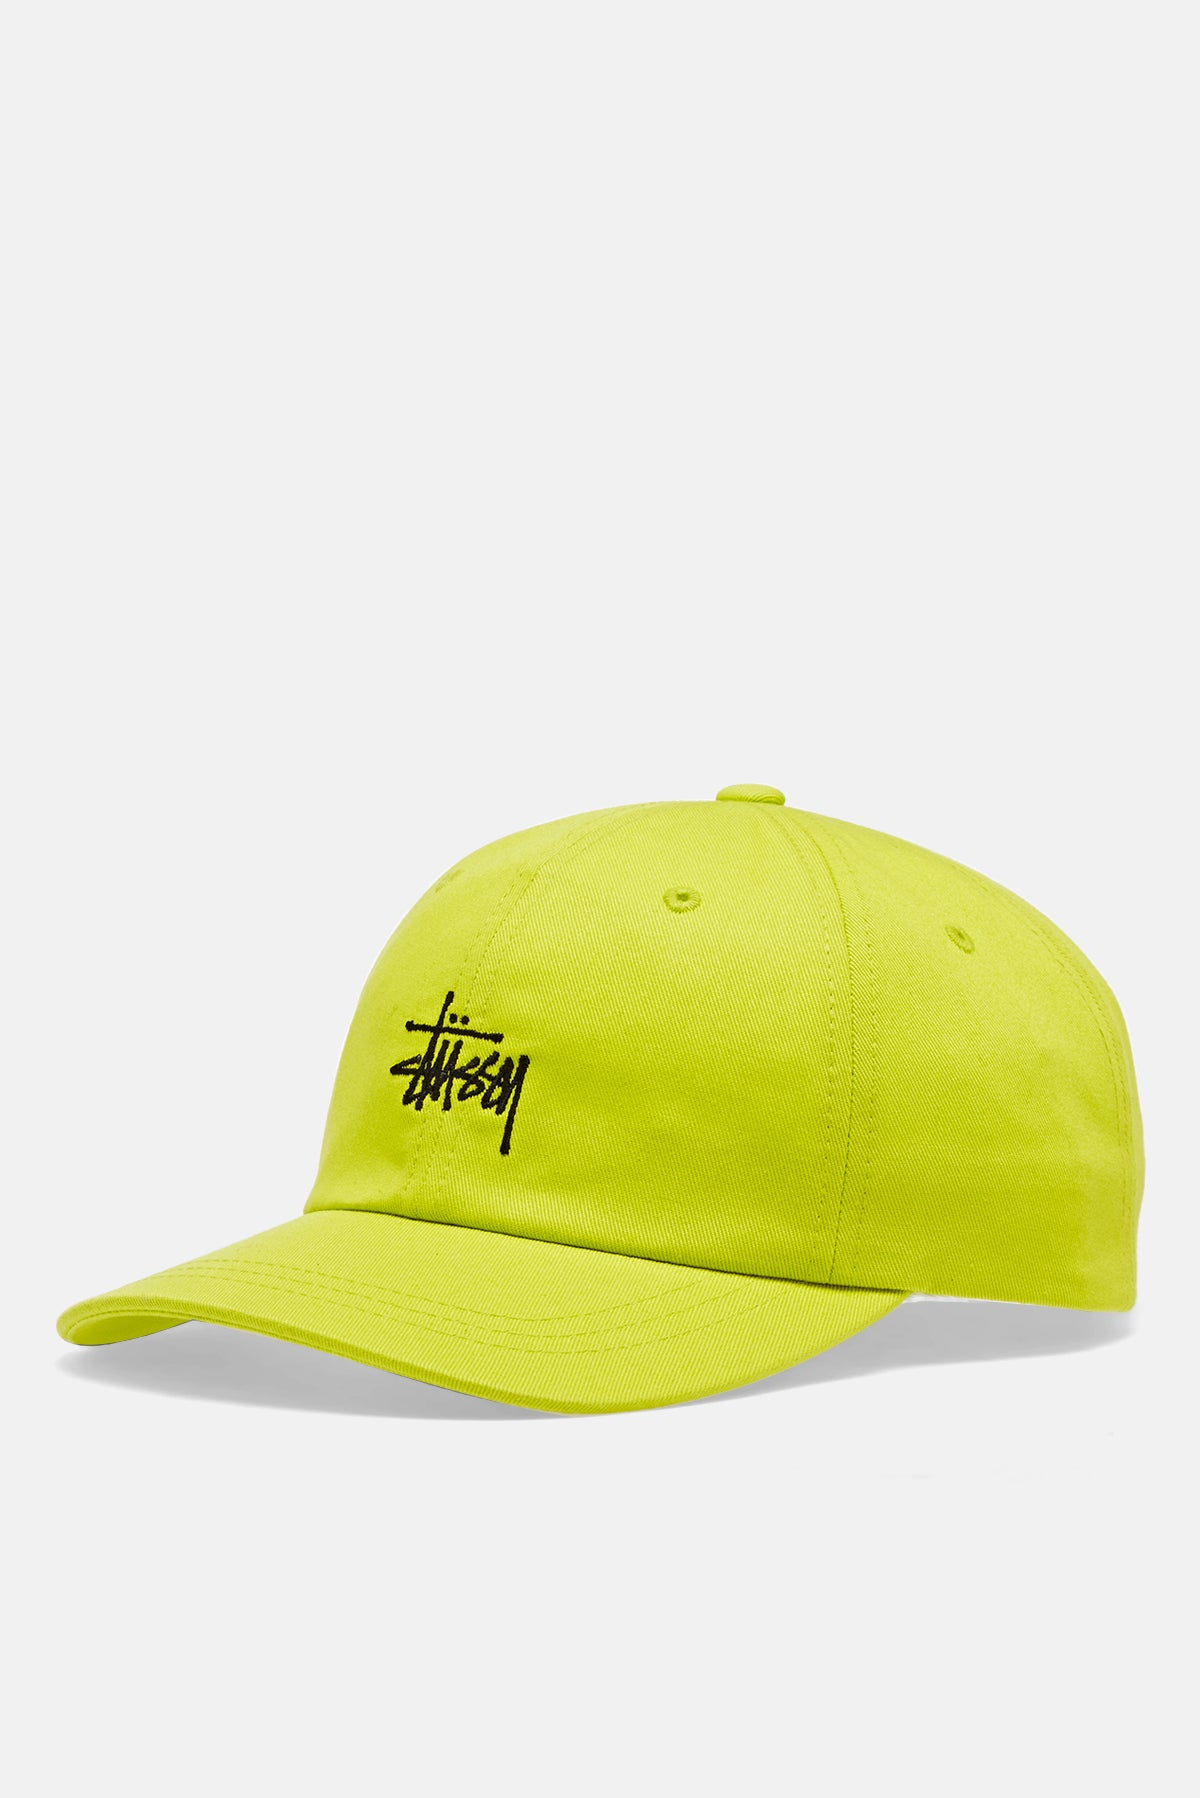 Stussy Stock Low Pro Cap available from Priory b2acb817ee5a